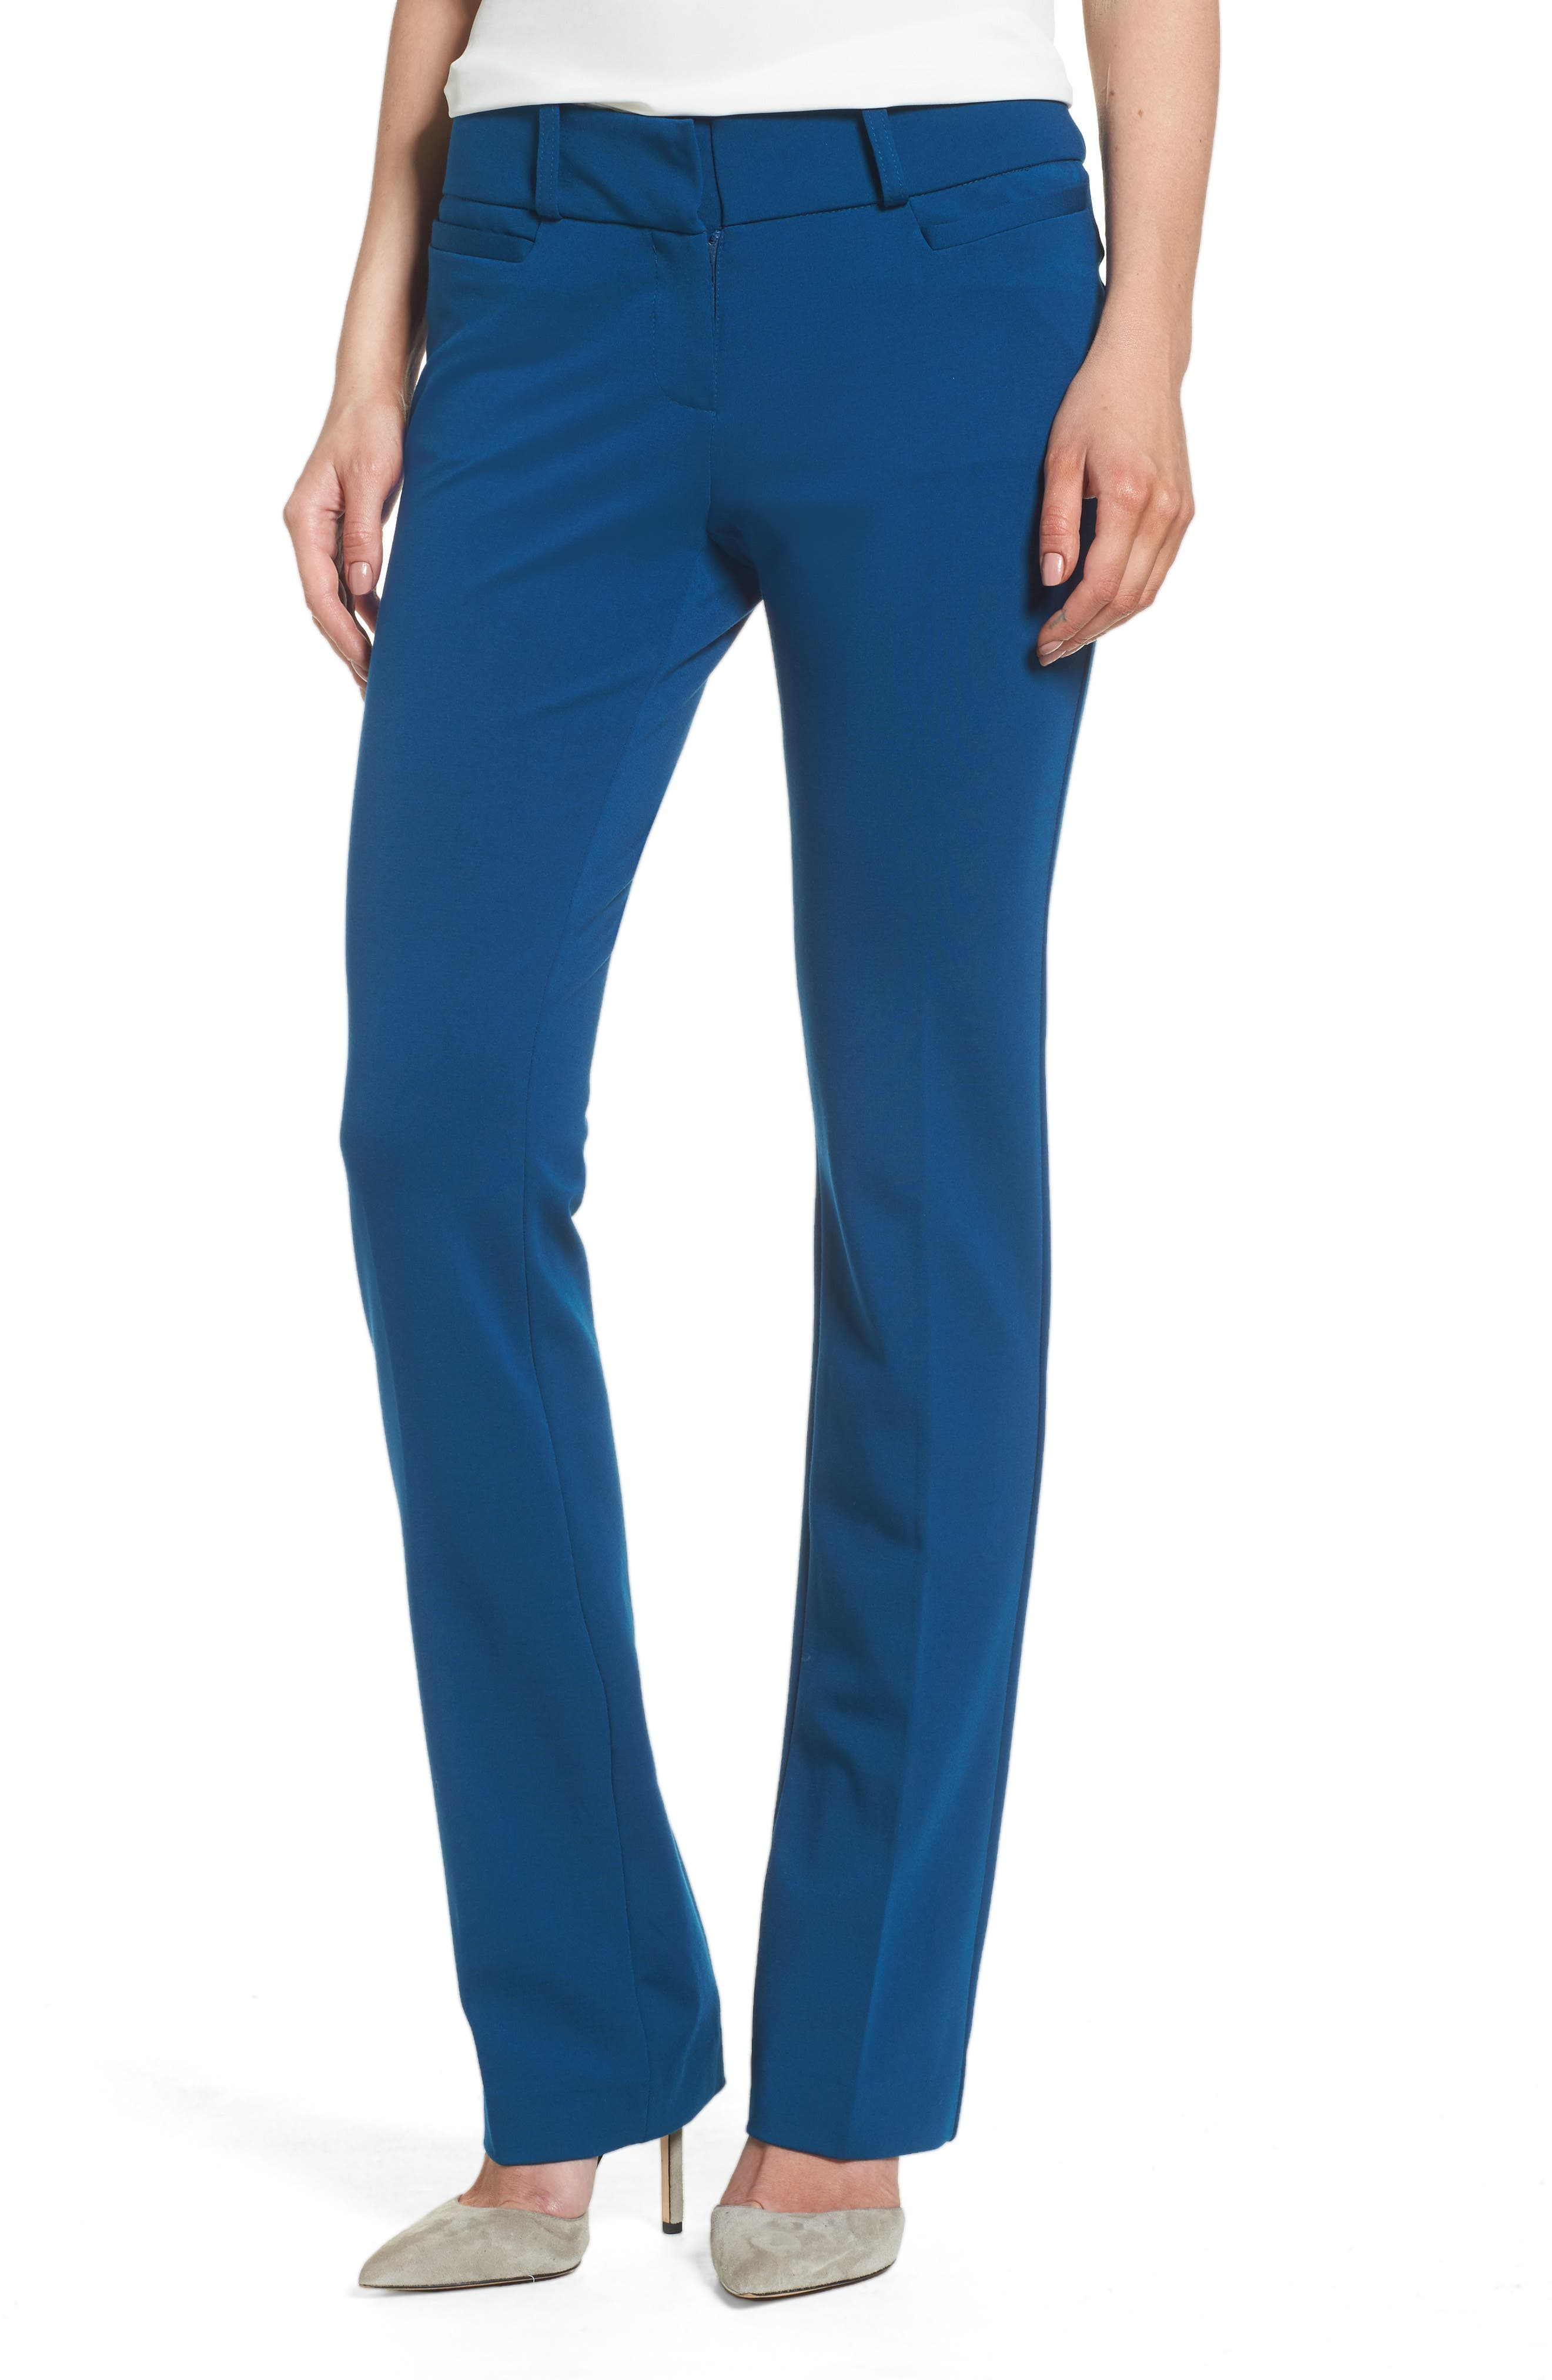 Jane Brown Trousers,                             Main thumbnail 1, color,                             NEW NAVY